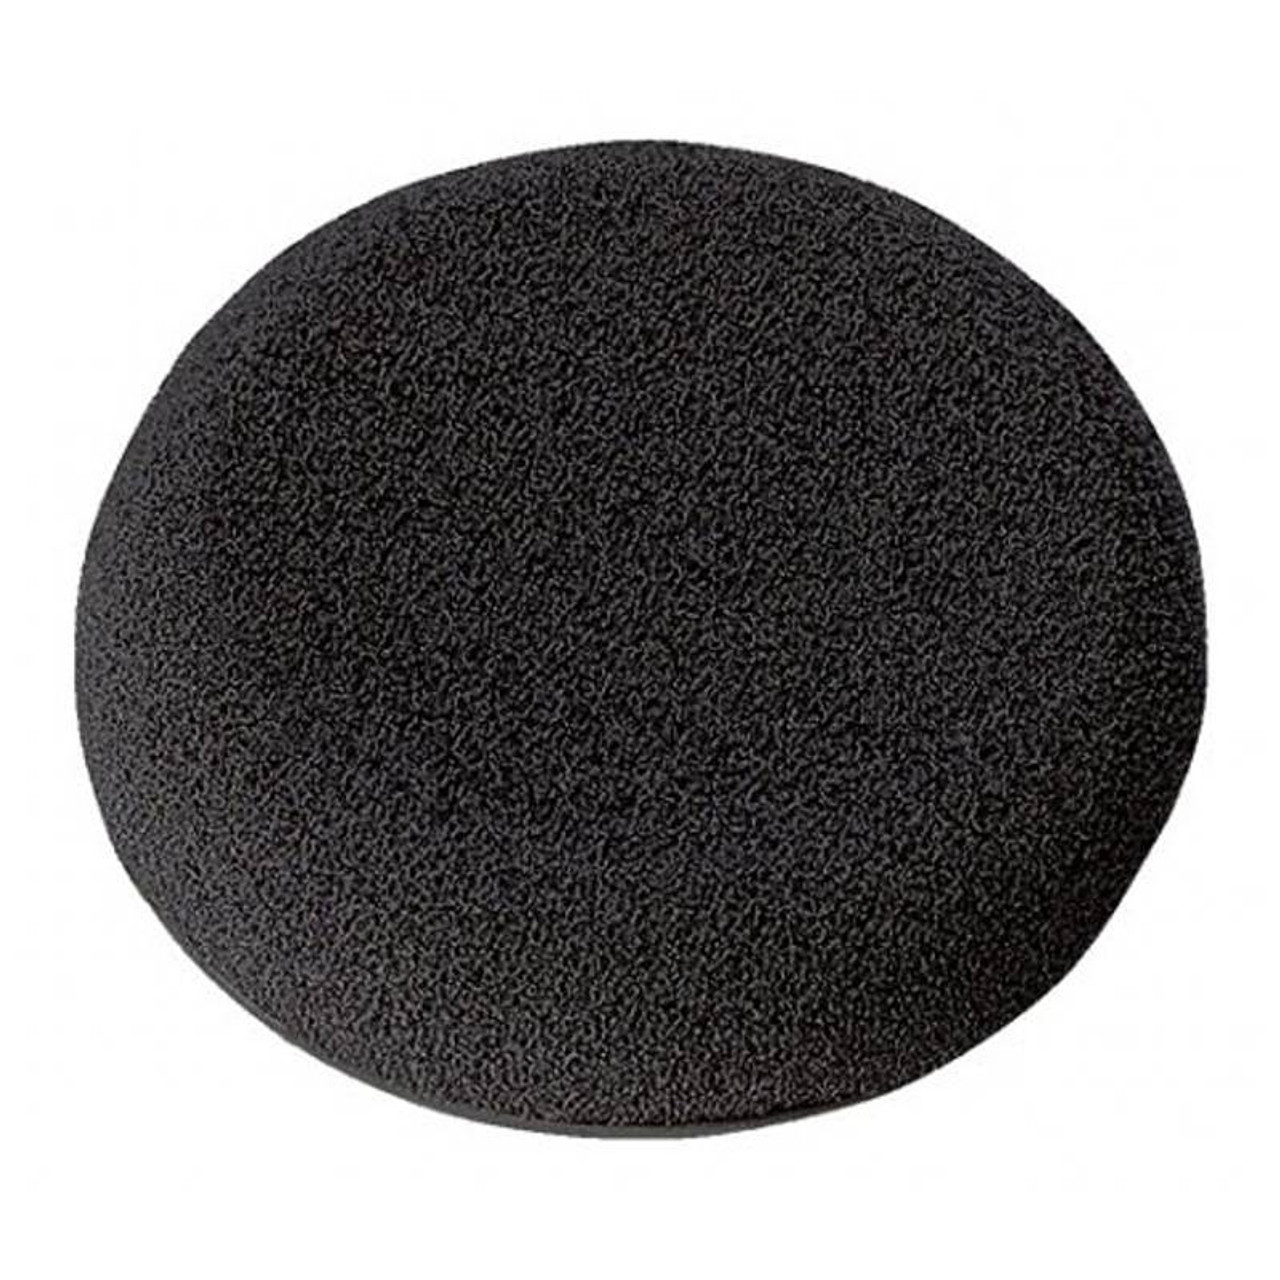 Image for Plantronics 1x Spare Foam Ear Cushion for EncorePro HW530/HW540 CX Computer Superstore